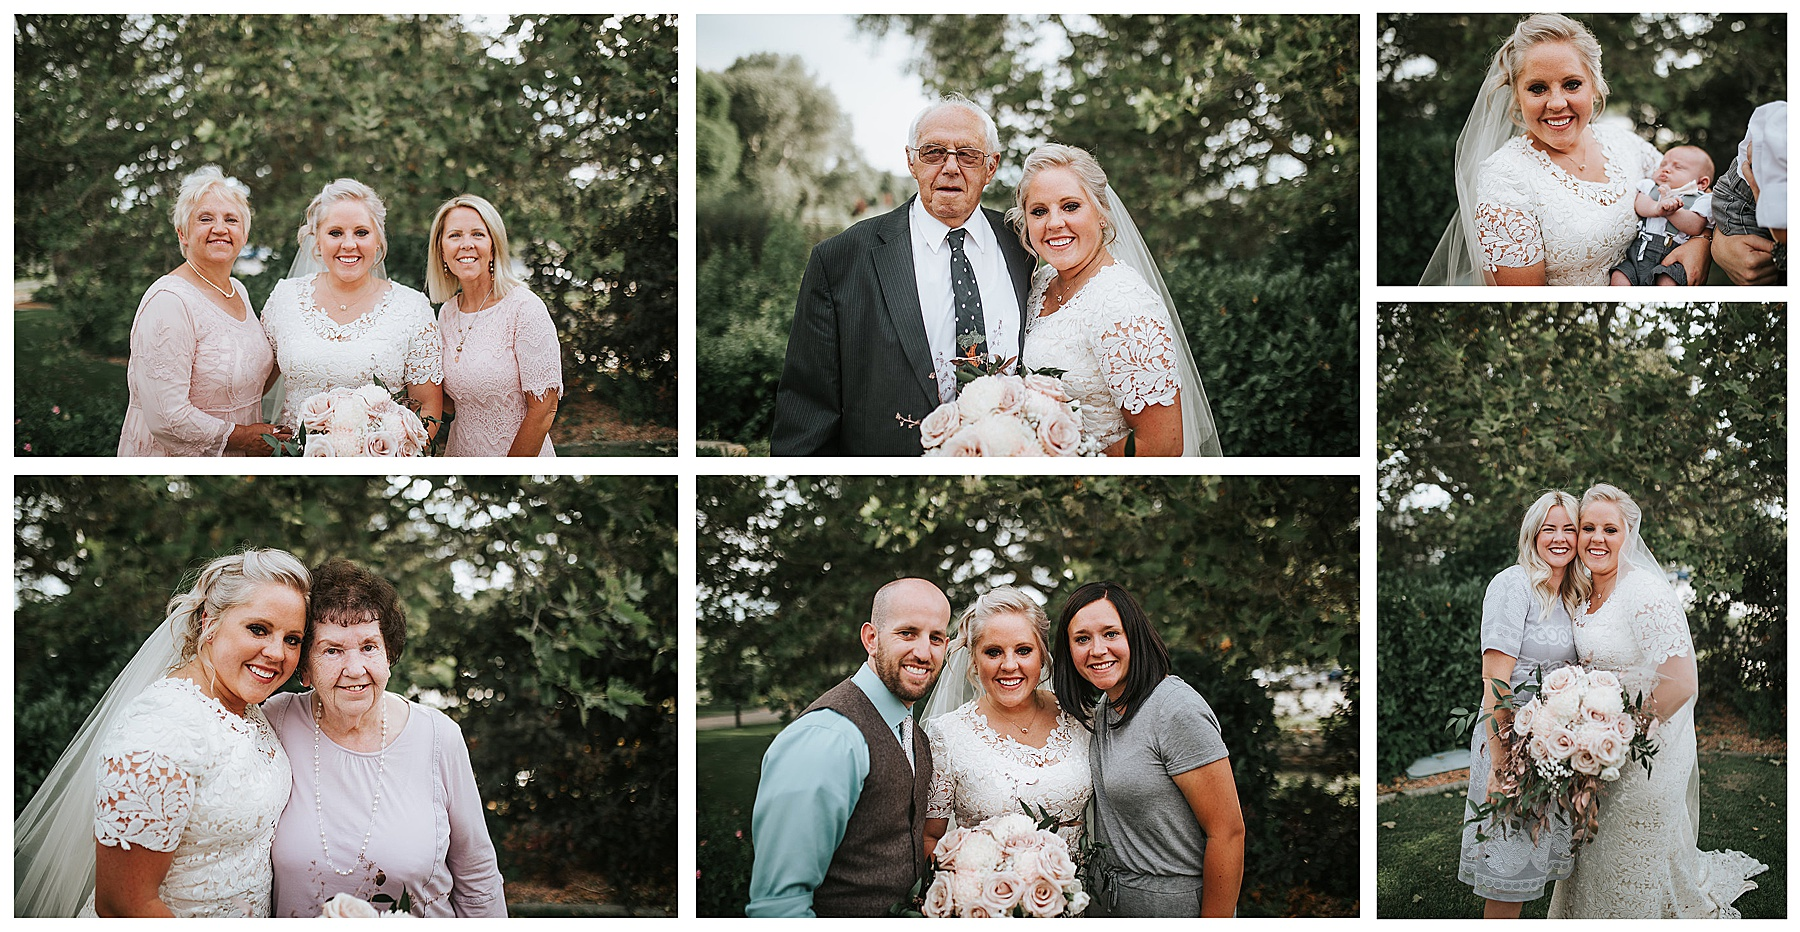 payson-utah-lds-wedding-look-for-the-light-photo-video